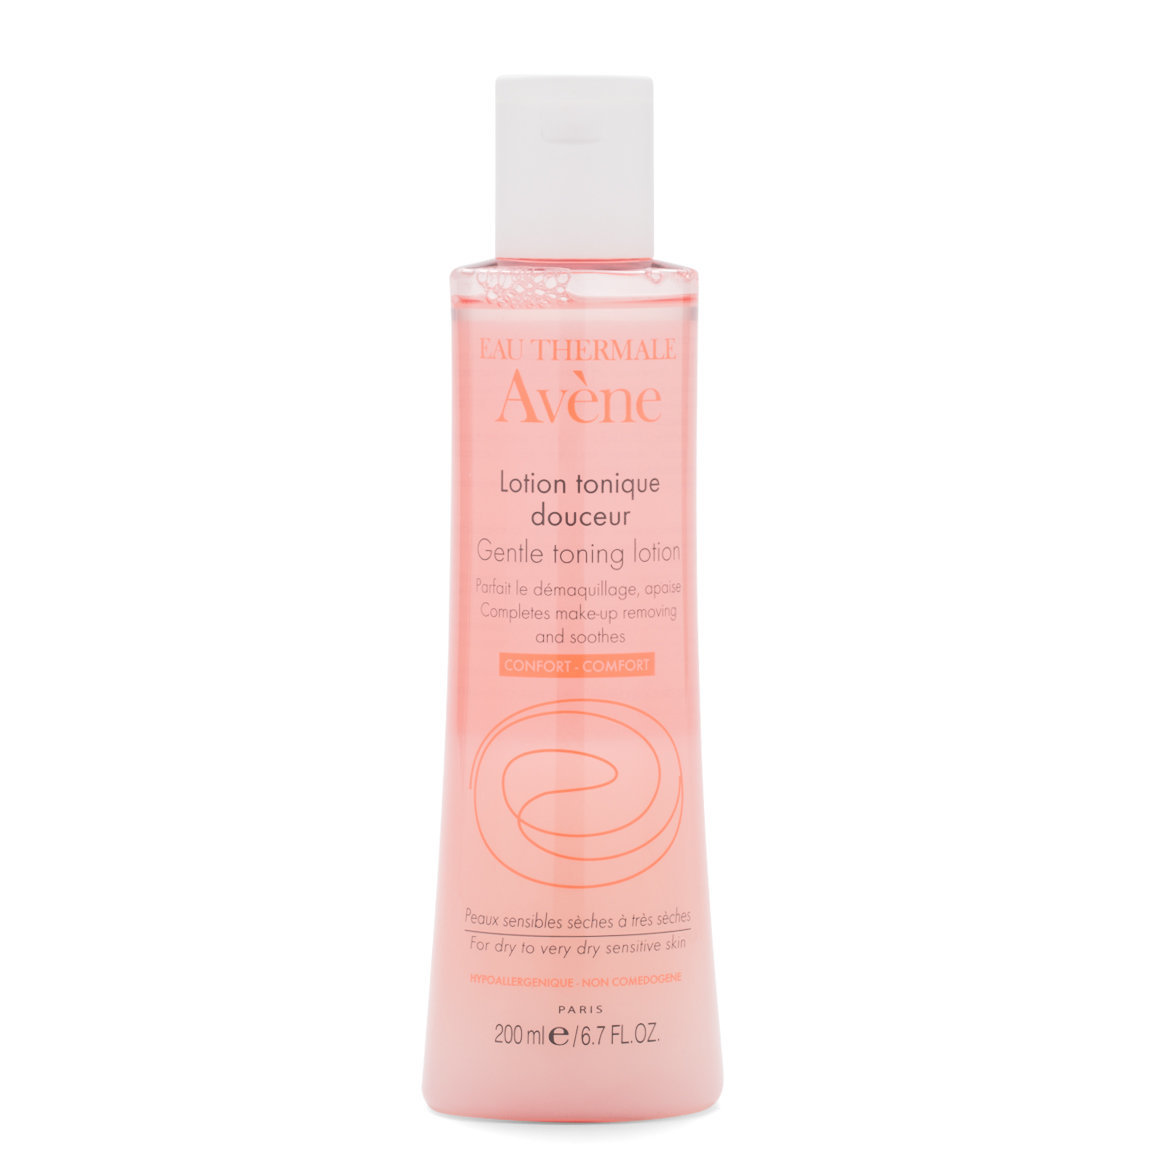 Eau Thermale Avène Gentle Toning Lotion 200 ml product swatch.